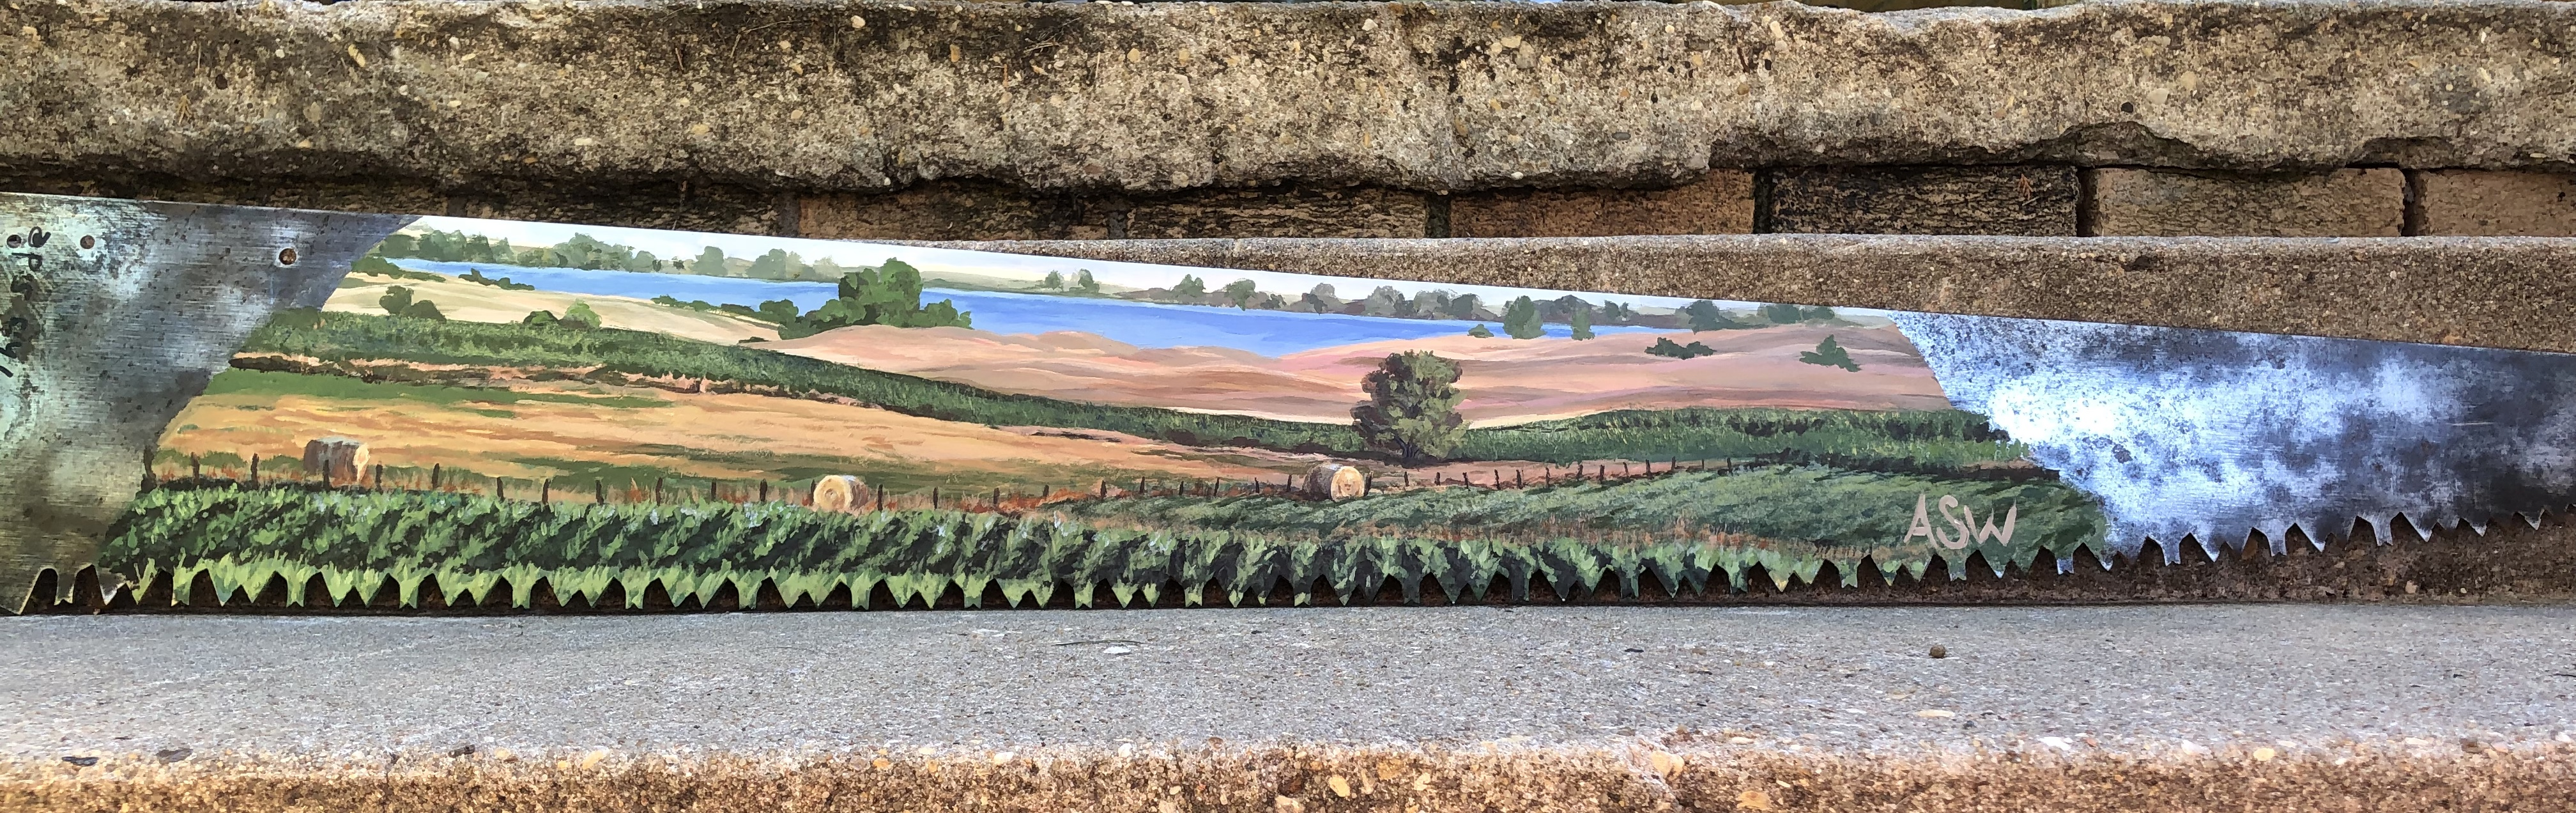 Kansas Scene on Saw-blade, 2019